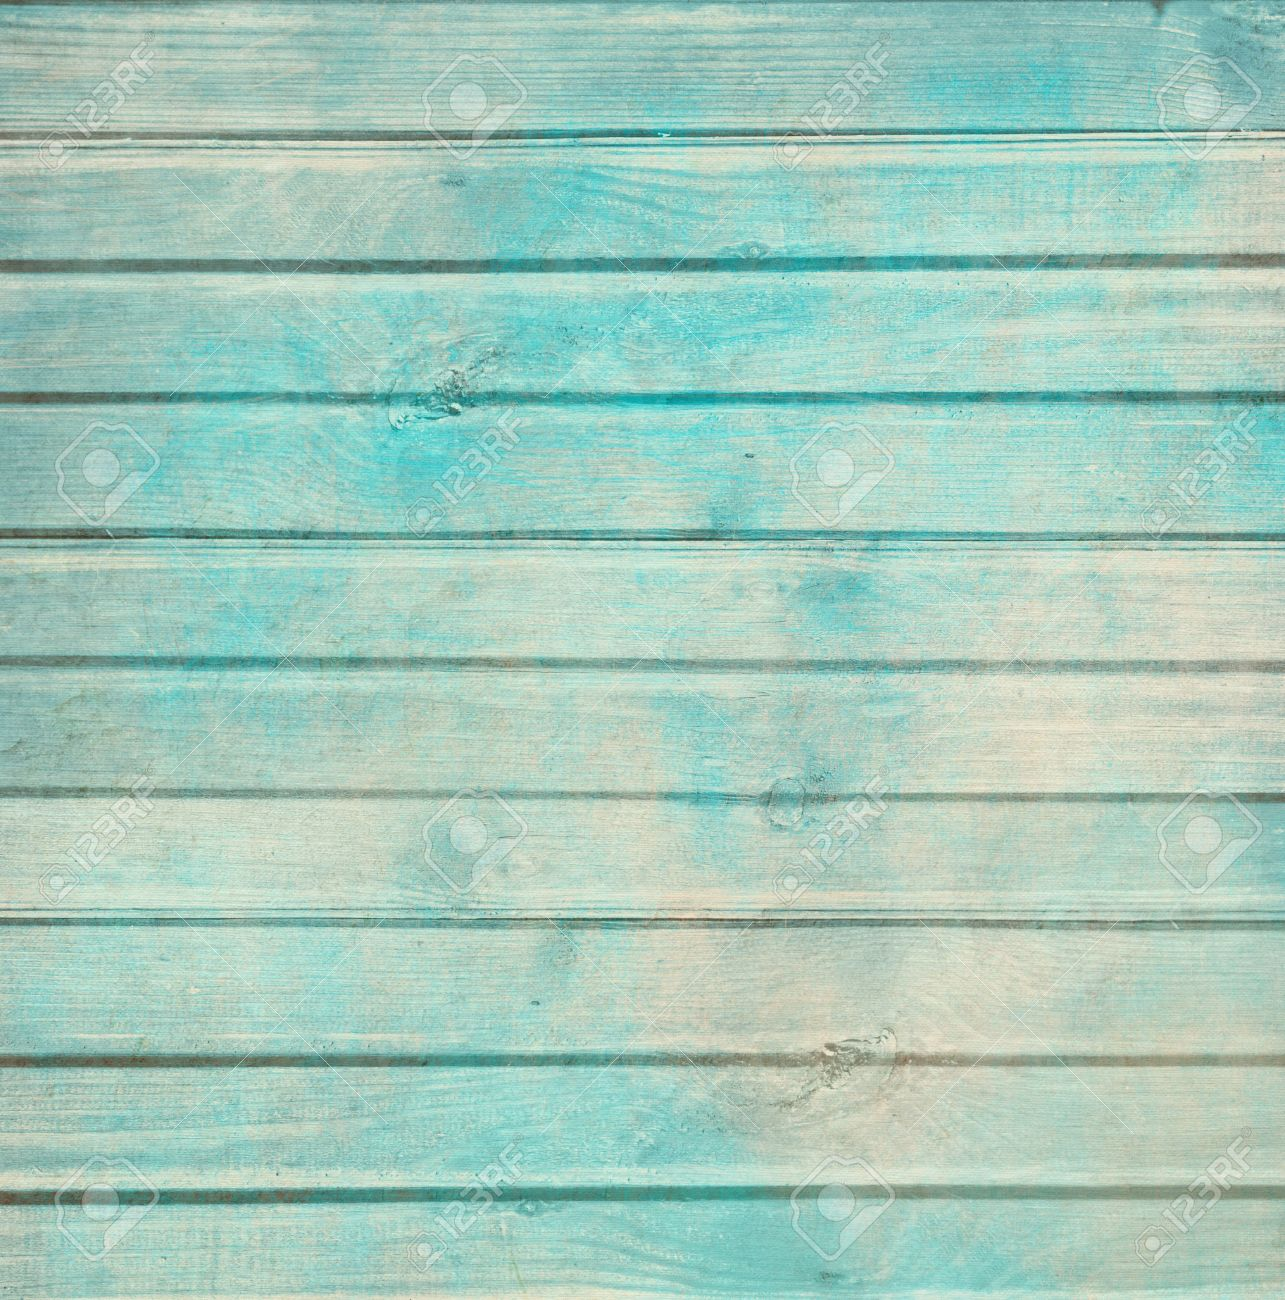 Rustic Old Plank Background In Turquoise Mint And Beige Colors With Textured Scratches Antique